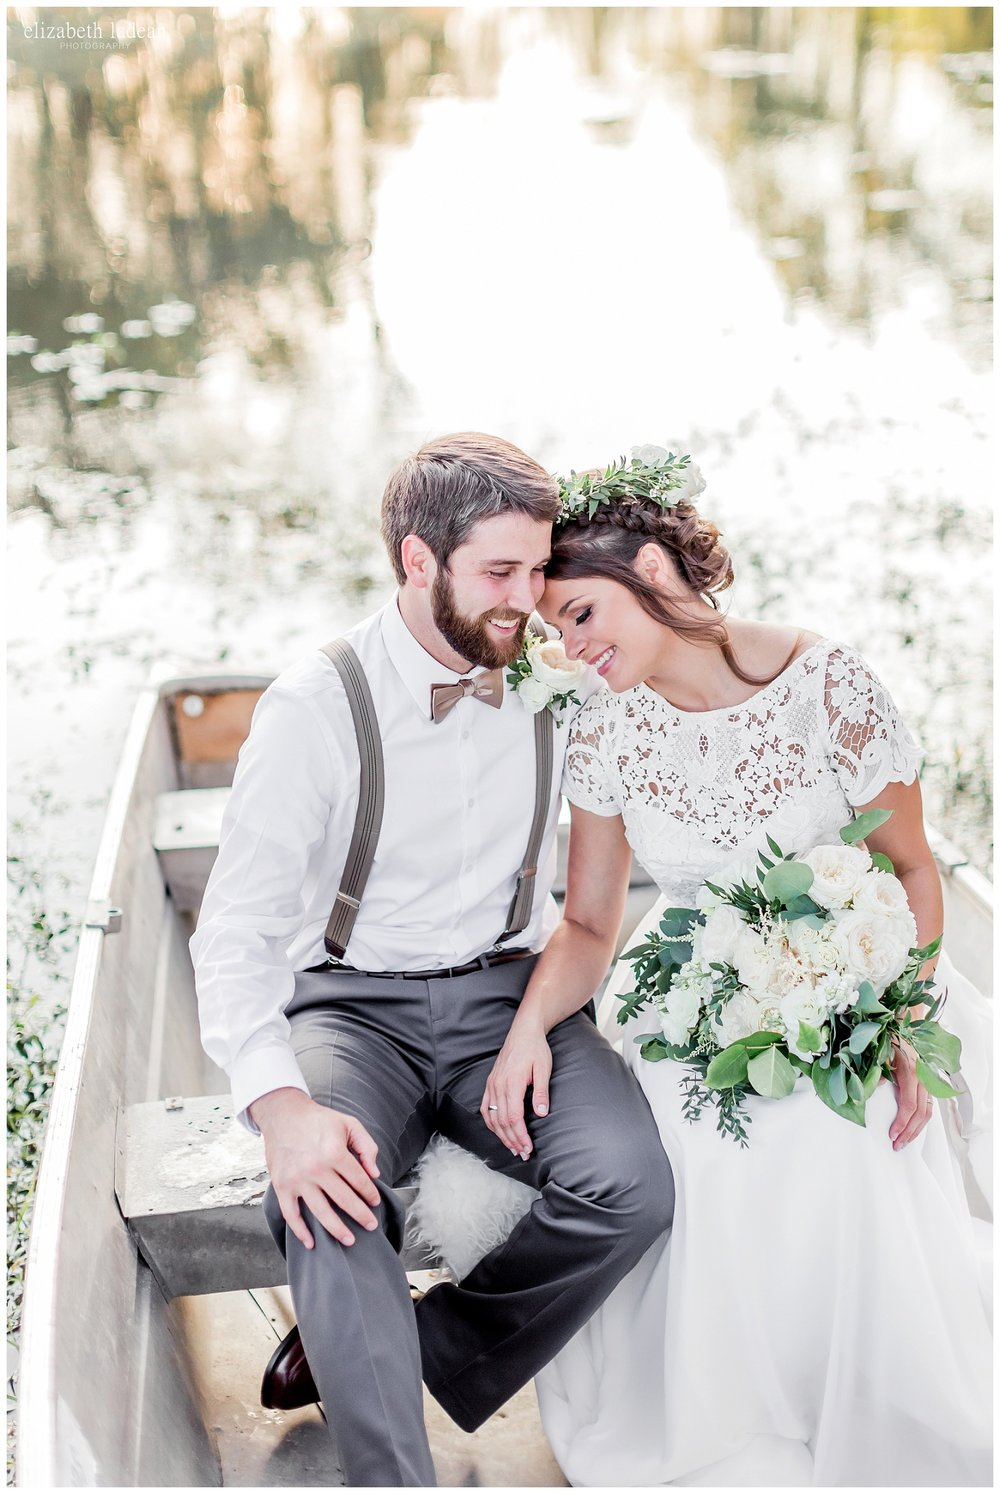 Boho-whimsical-woodsy-themed-wedding-2018-elizabeth-ladean-photography-photo-_7106.jpg